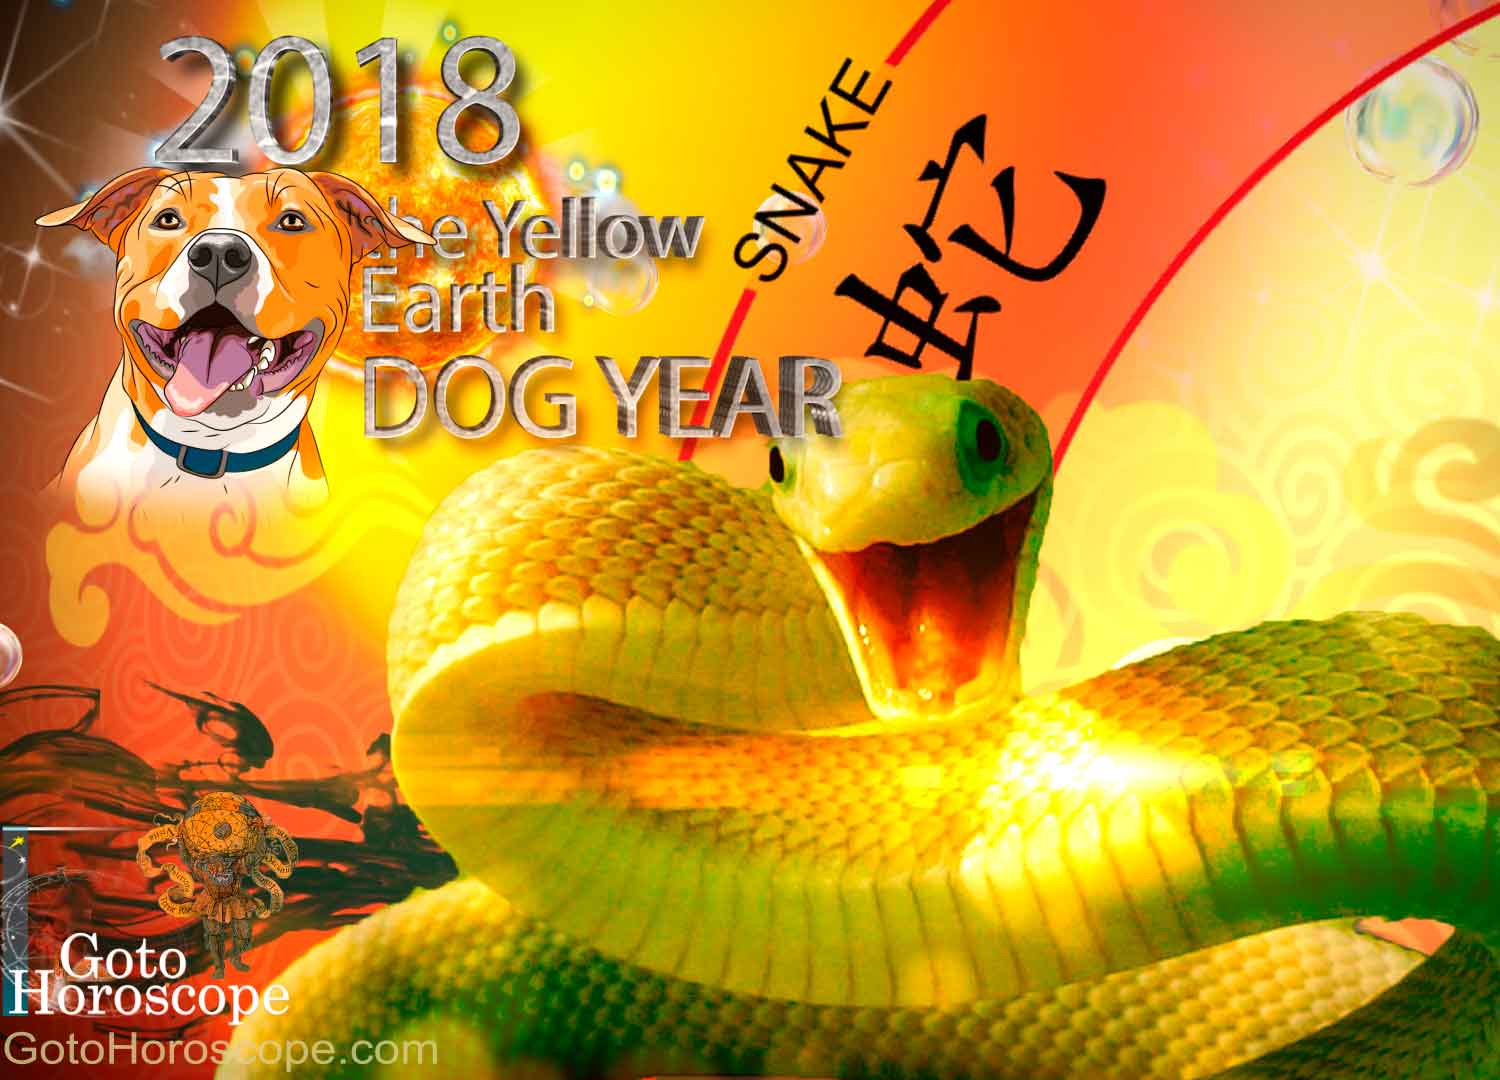 Snake 2018 Horoscope for the Yellow Earth Dog Year